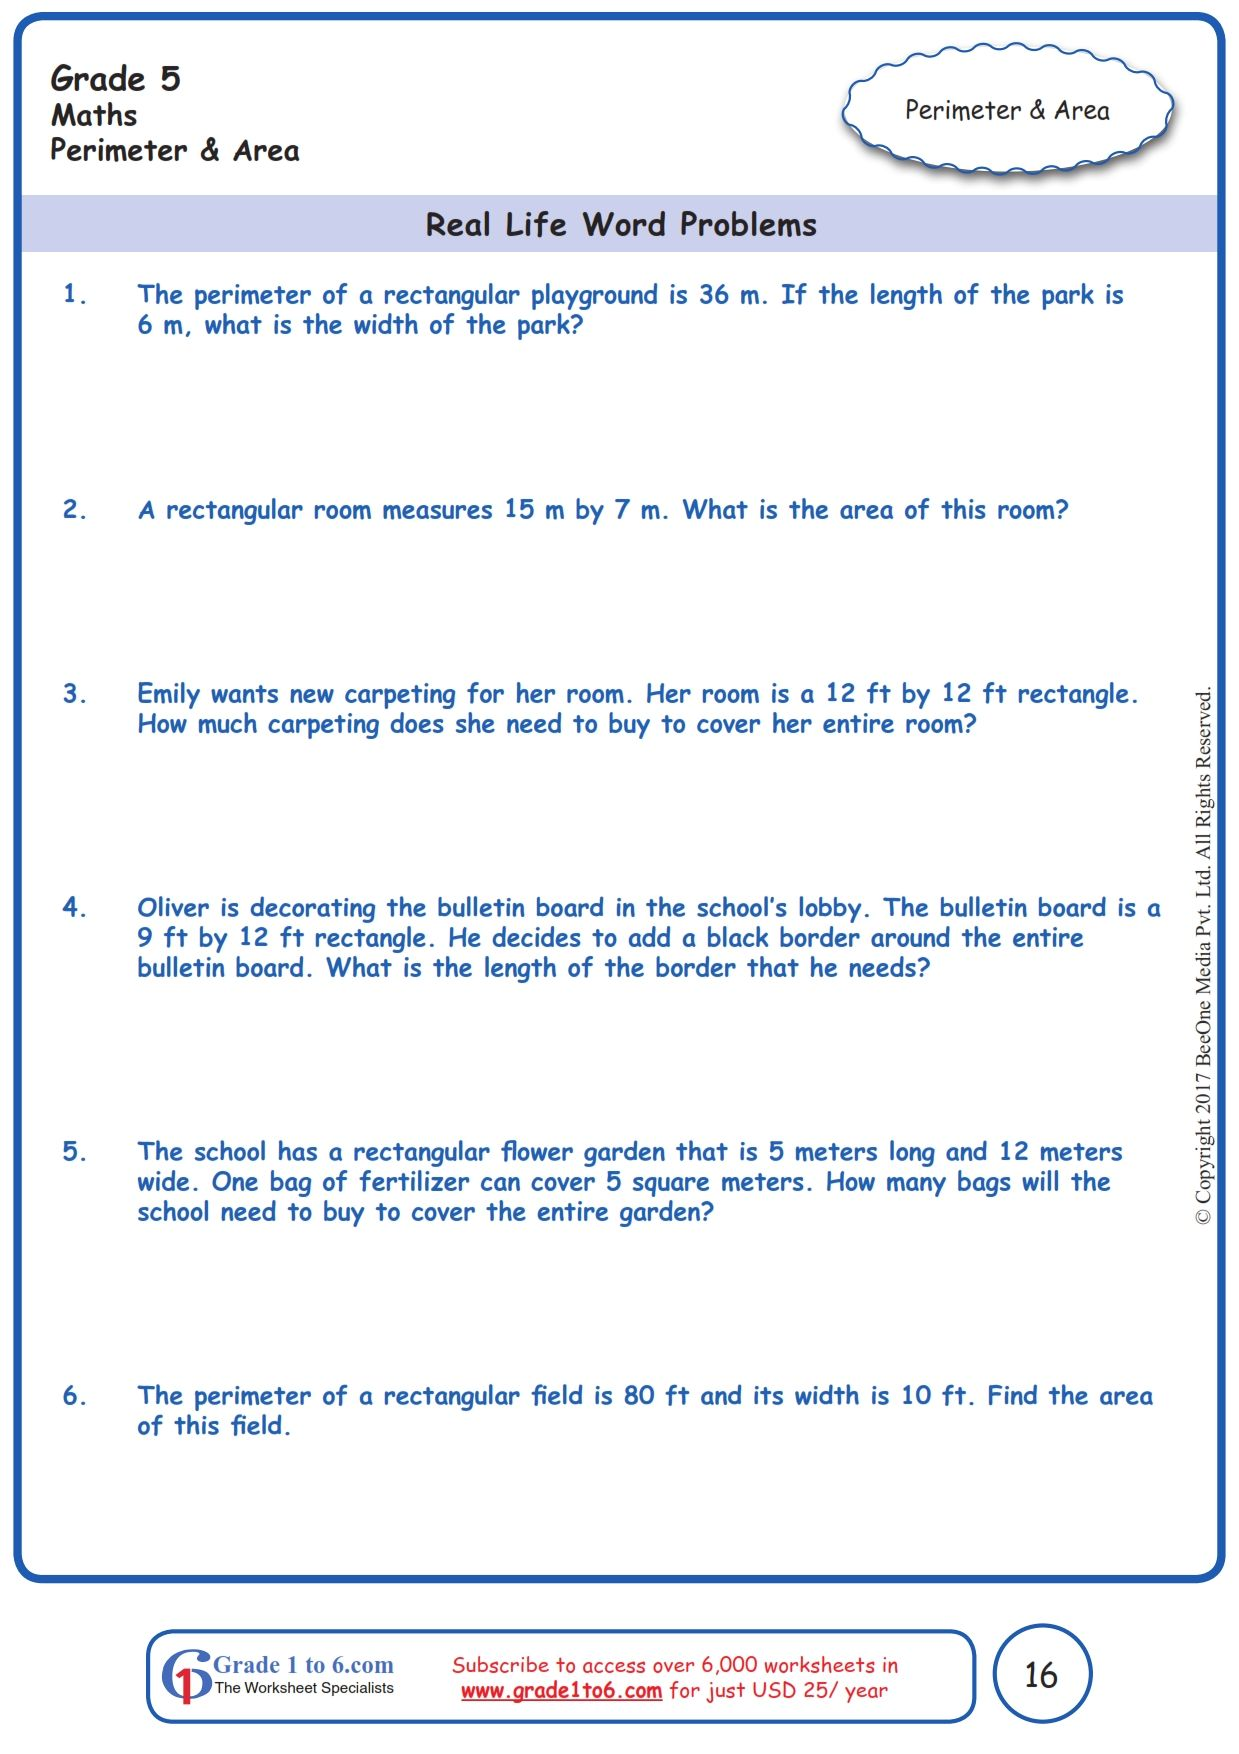 Worksheet Grade 5 Math Real Life Word Problems Word Problem Worksheets Word Problems Math Fact Worksheets